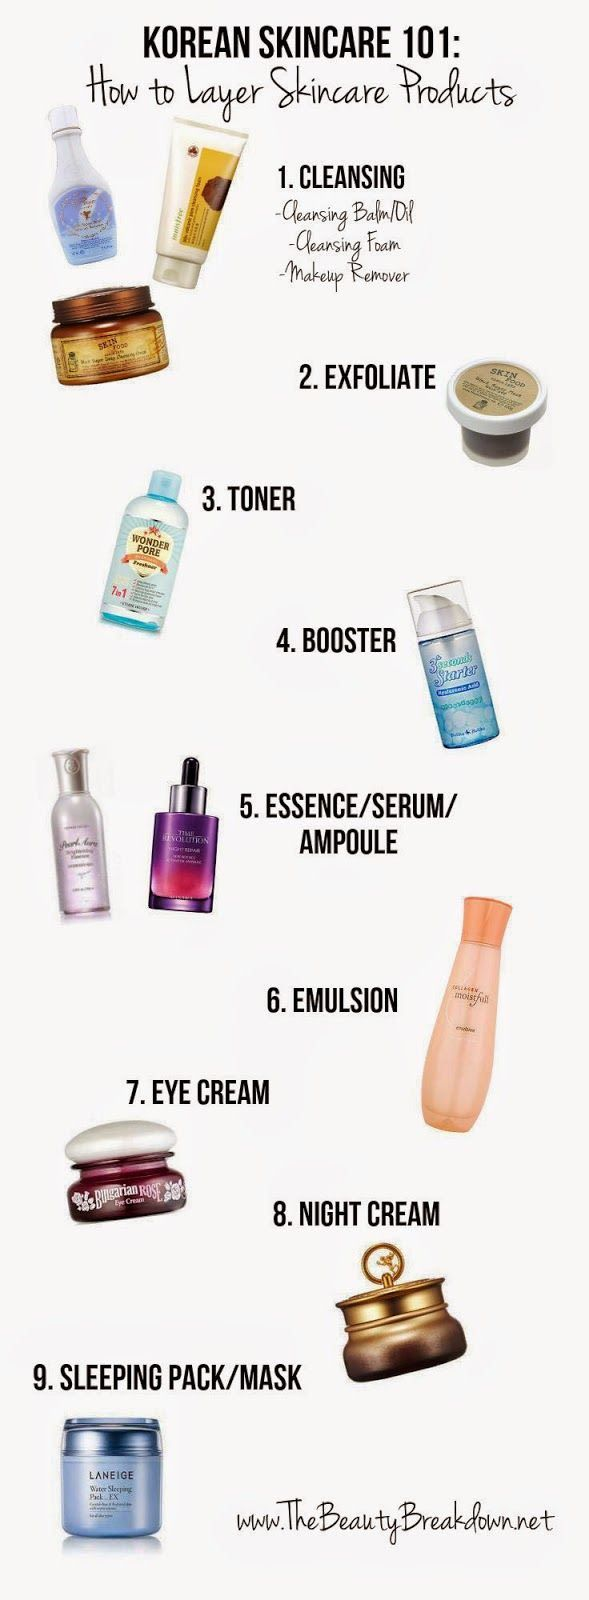 14 Must Have Korean Beauty Products - Korean Skincare 101, a 9 step process to flawless skin. Photo via The Beauty Breakdown